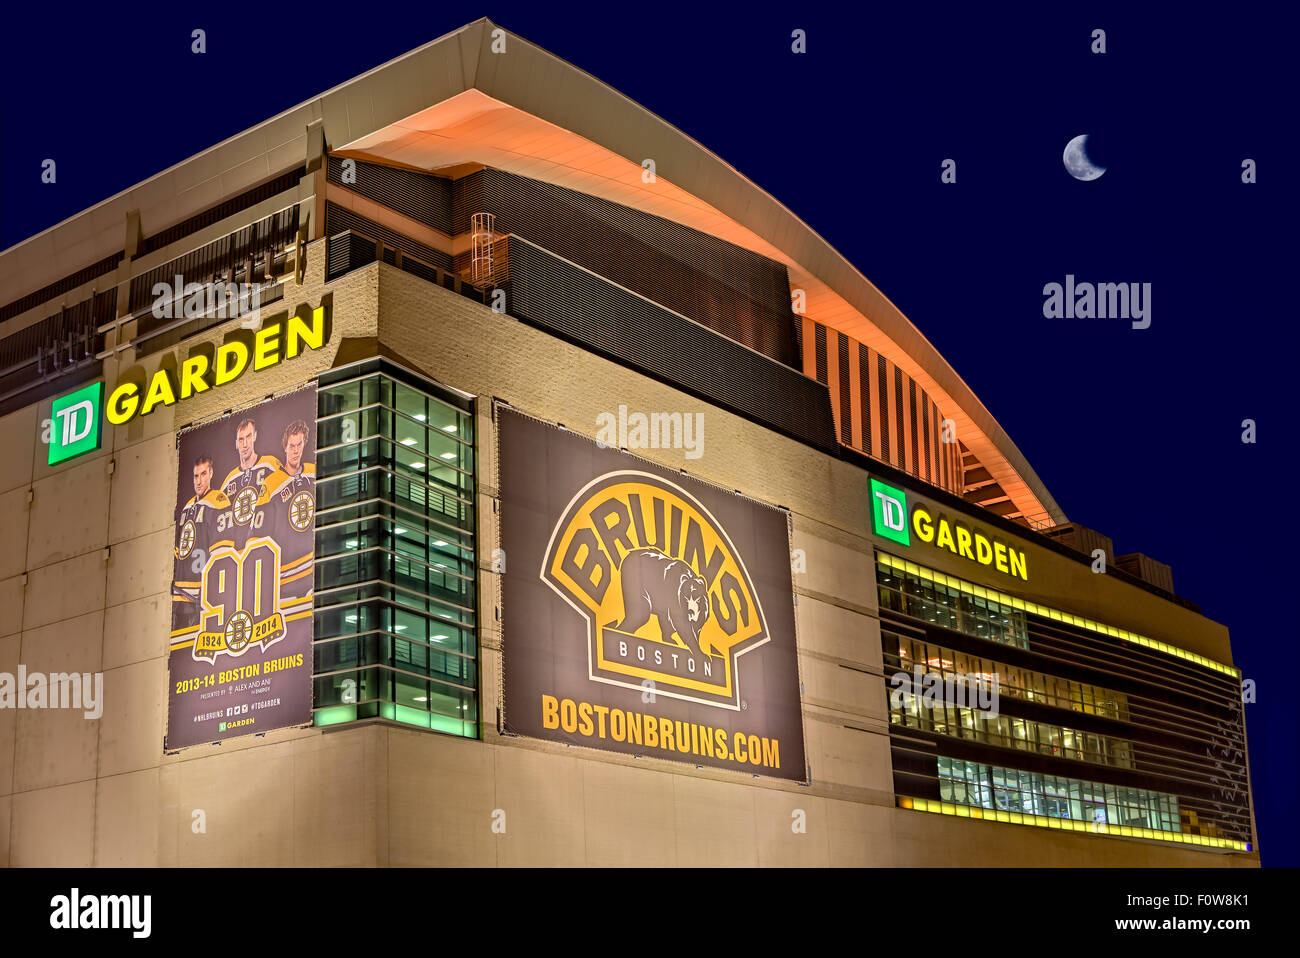 Td Garden Boston Stock Photos & Td Garden Boston Stock Images - Alamy